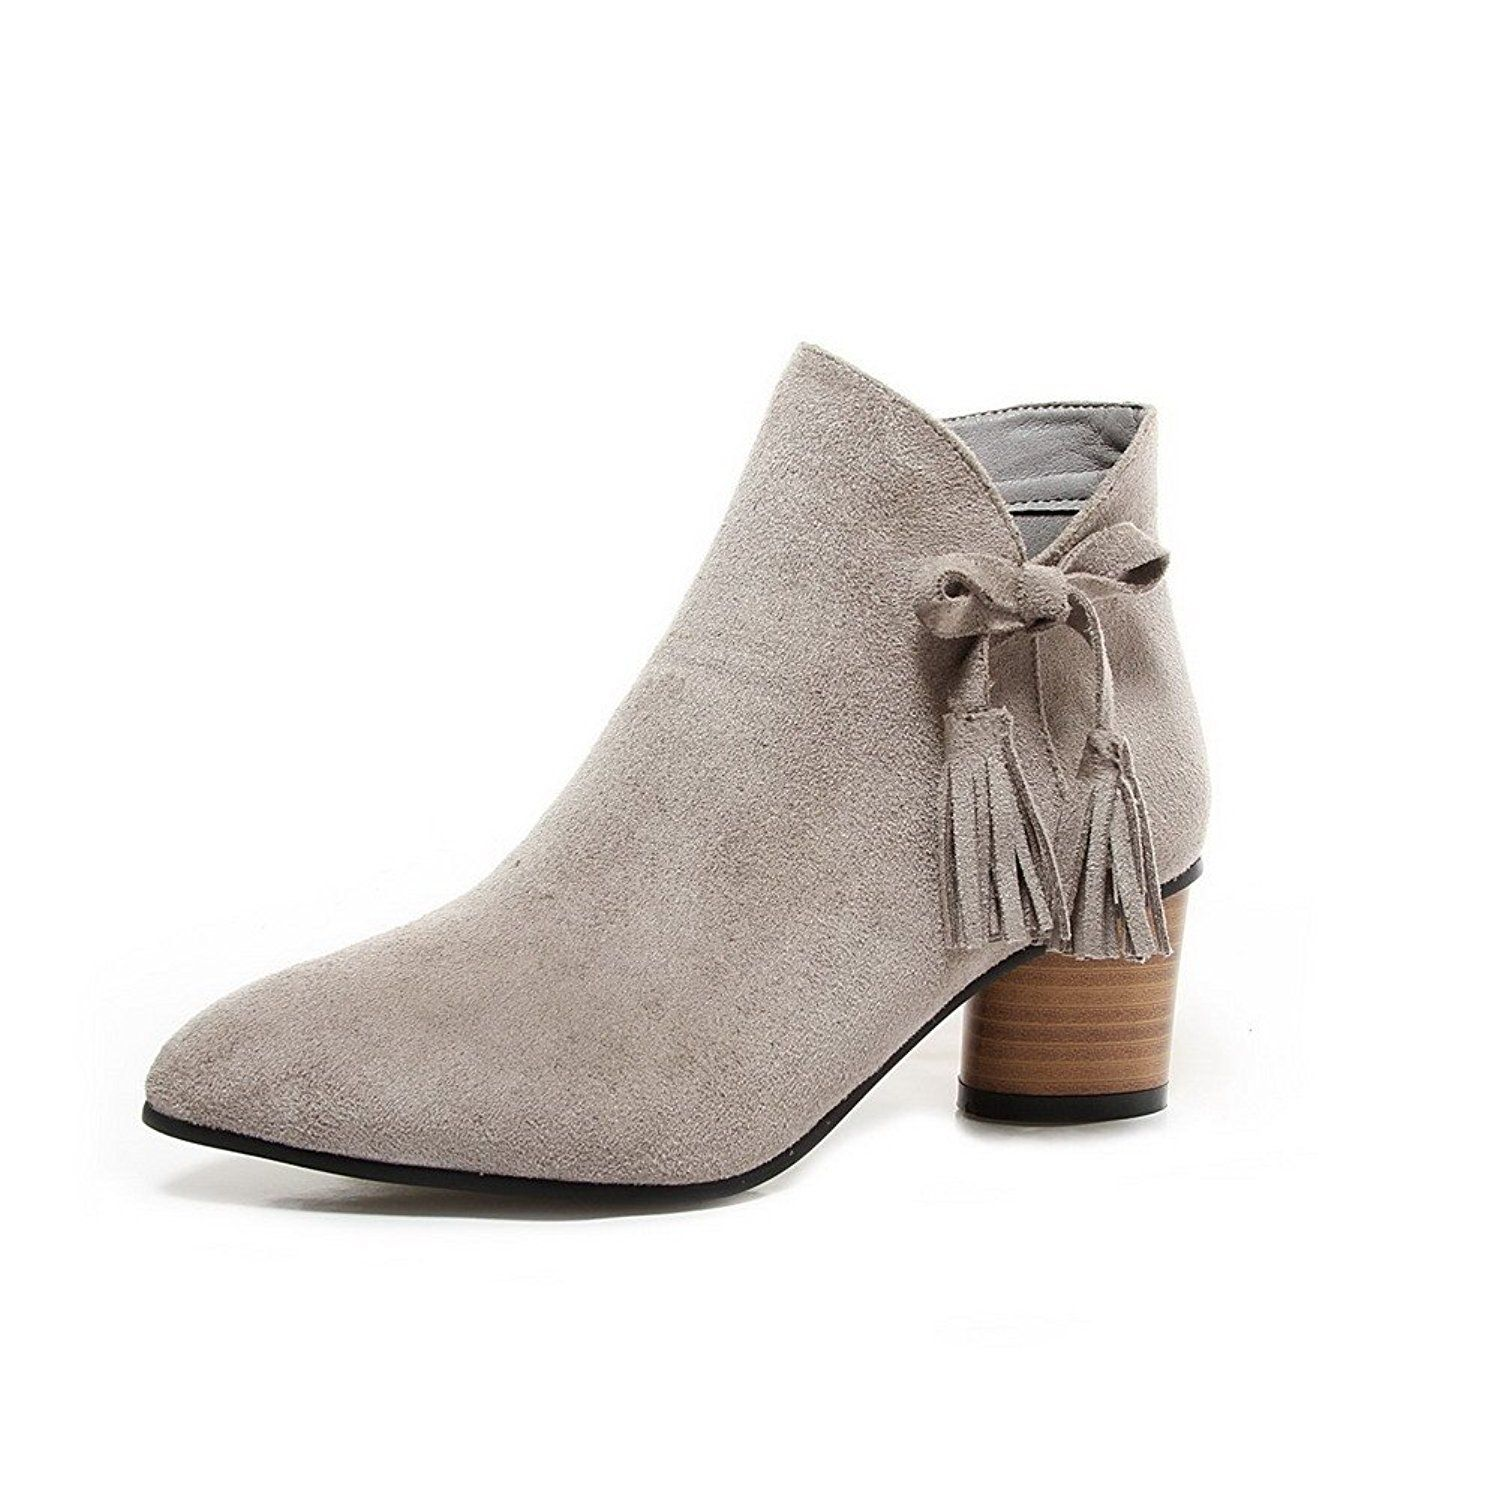 Women's Zipper Kitten-Heels Imitated Suede Solid Ankle-high Boots